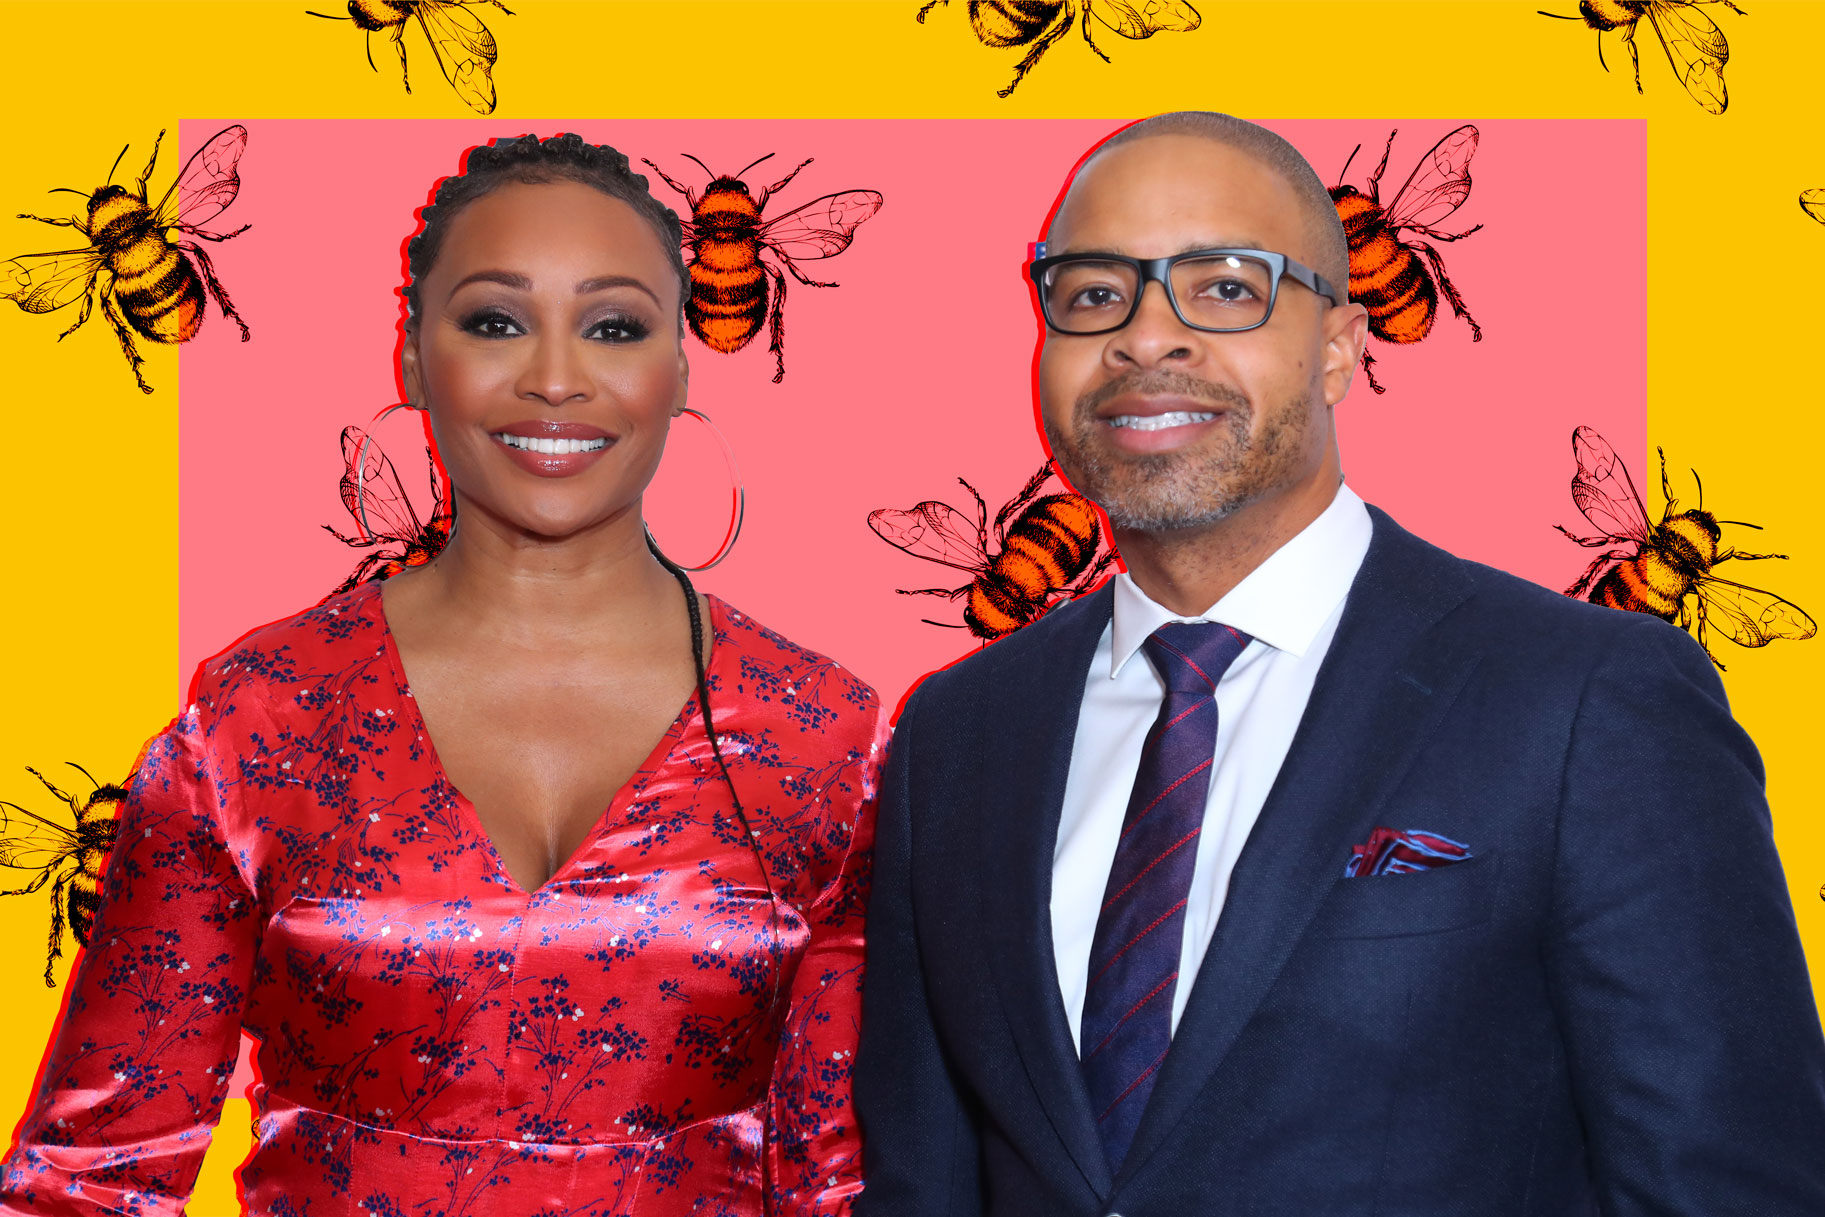 Cynthia Bailey Gets Engaged To Mike Hill - Here Are The Photos